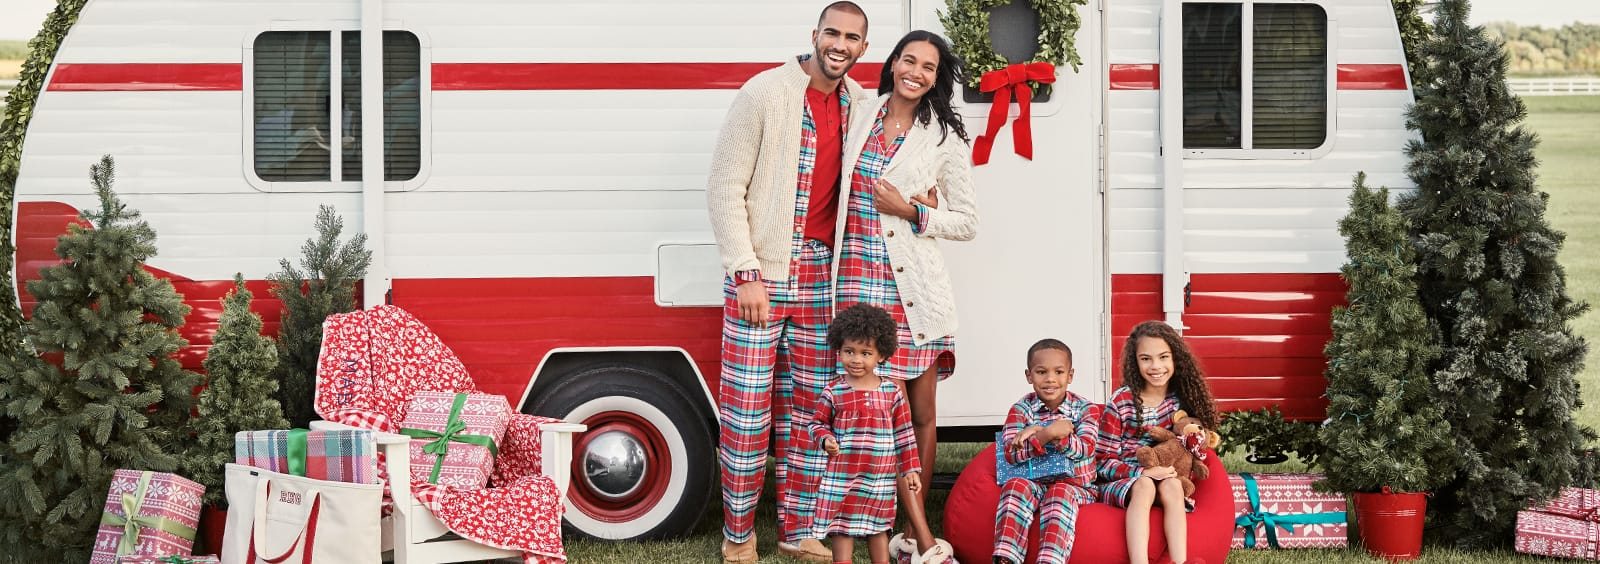 Funny Family Christmas Pajama Pictures for Your Christmas Card